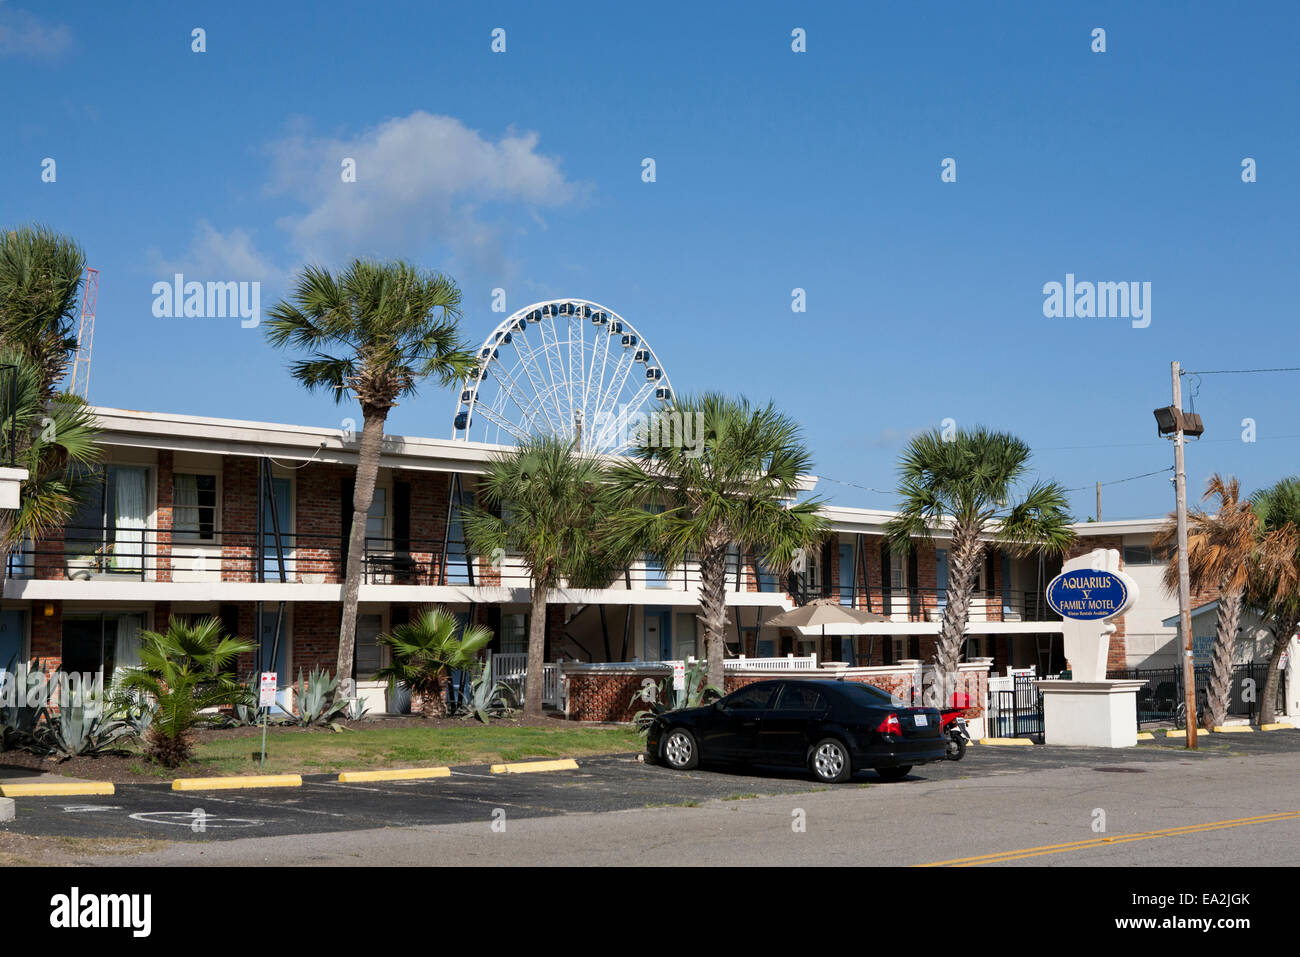 South Beach Hotels With Free Parking